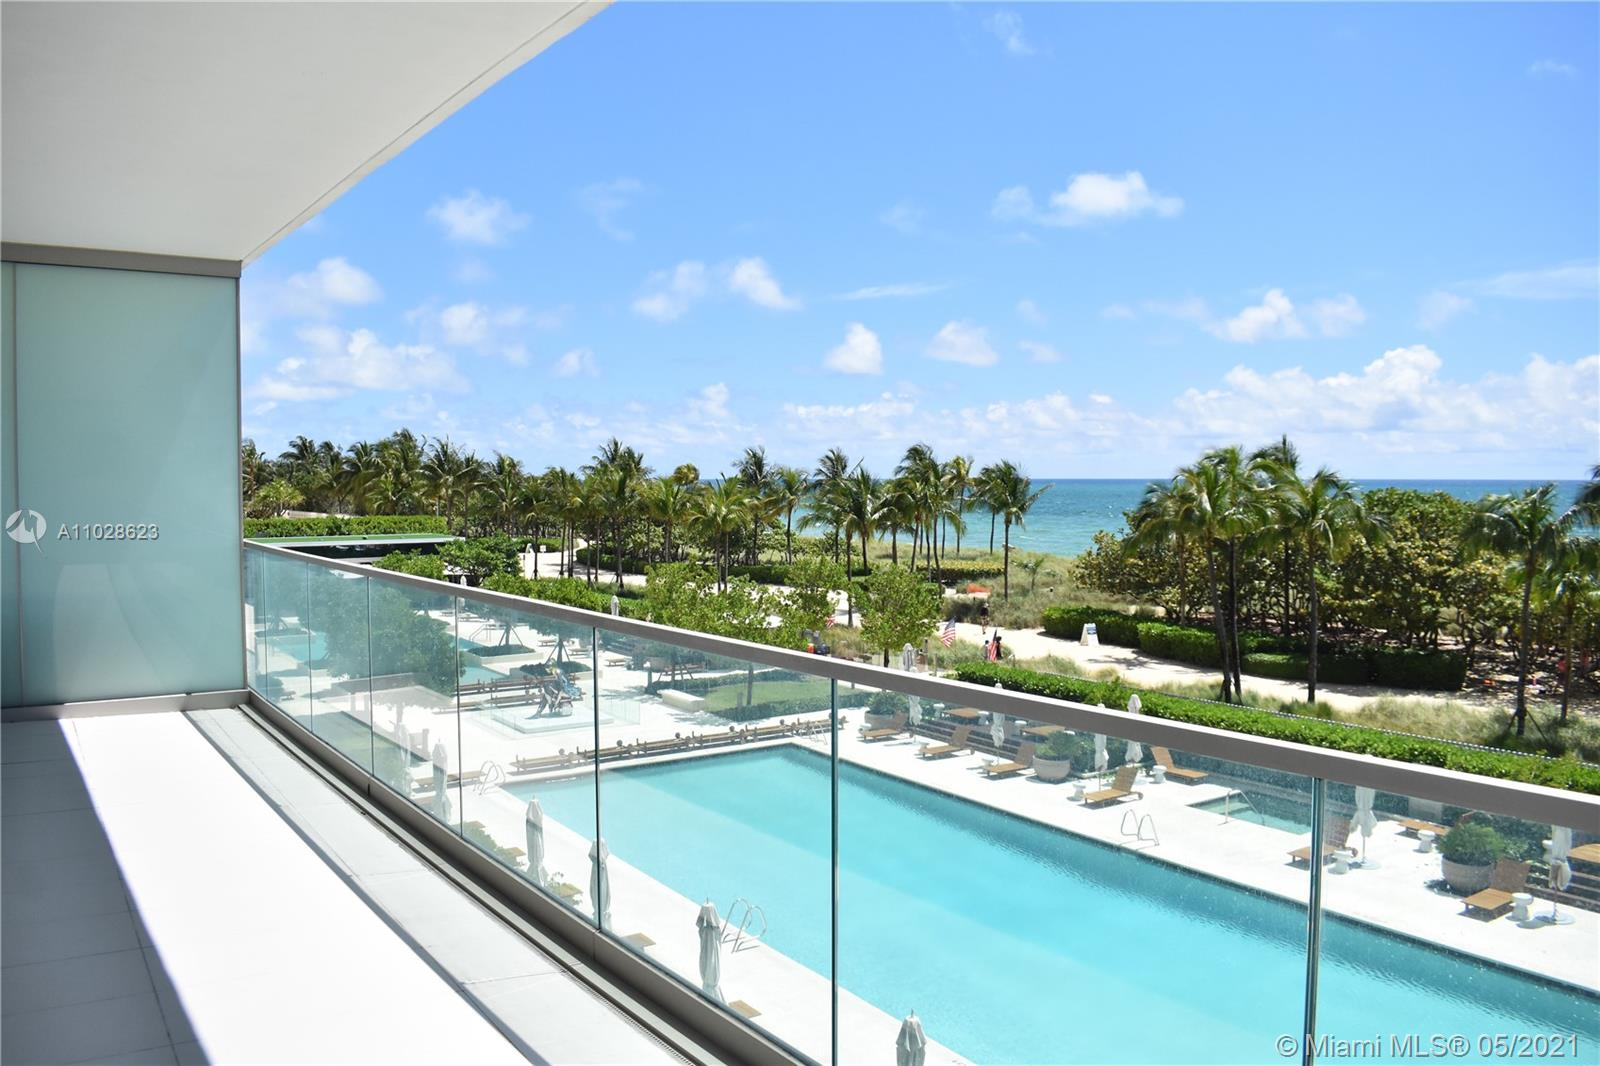 Ocean front corner unit with 2 beds, 2 1/2 Baths at the beautiful & desirable Oceana Bal Harbour. As you open the windows to your wrap-around terrace you will be immediately connected to the vibrance of the Ocean, sound of the waves and the beauty of the palm trees right in front of you. Oceana with 4.8 acres of land accommodates many amenities such as 2 tennis clay courts, 2 swimming pools, private restaurant, cabanas, movie theater, 5-star spa and gym facilities and lots of art throughout the property. The prized Jeff Koons' Pluto and Proserpina, a stainless-steel sculpture that stands over 10 feet tall and Ballerina right between the 2 pools are the jewels of Oceana. When people come, they just fall in love with Oceana. This unit is currently tenant occupied. Call or text for more info.